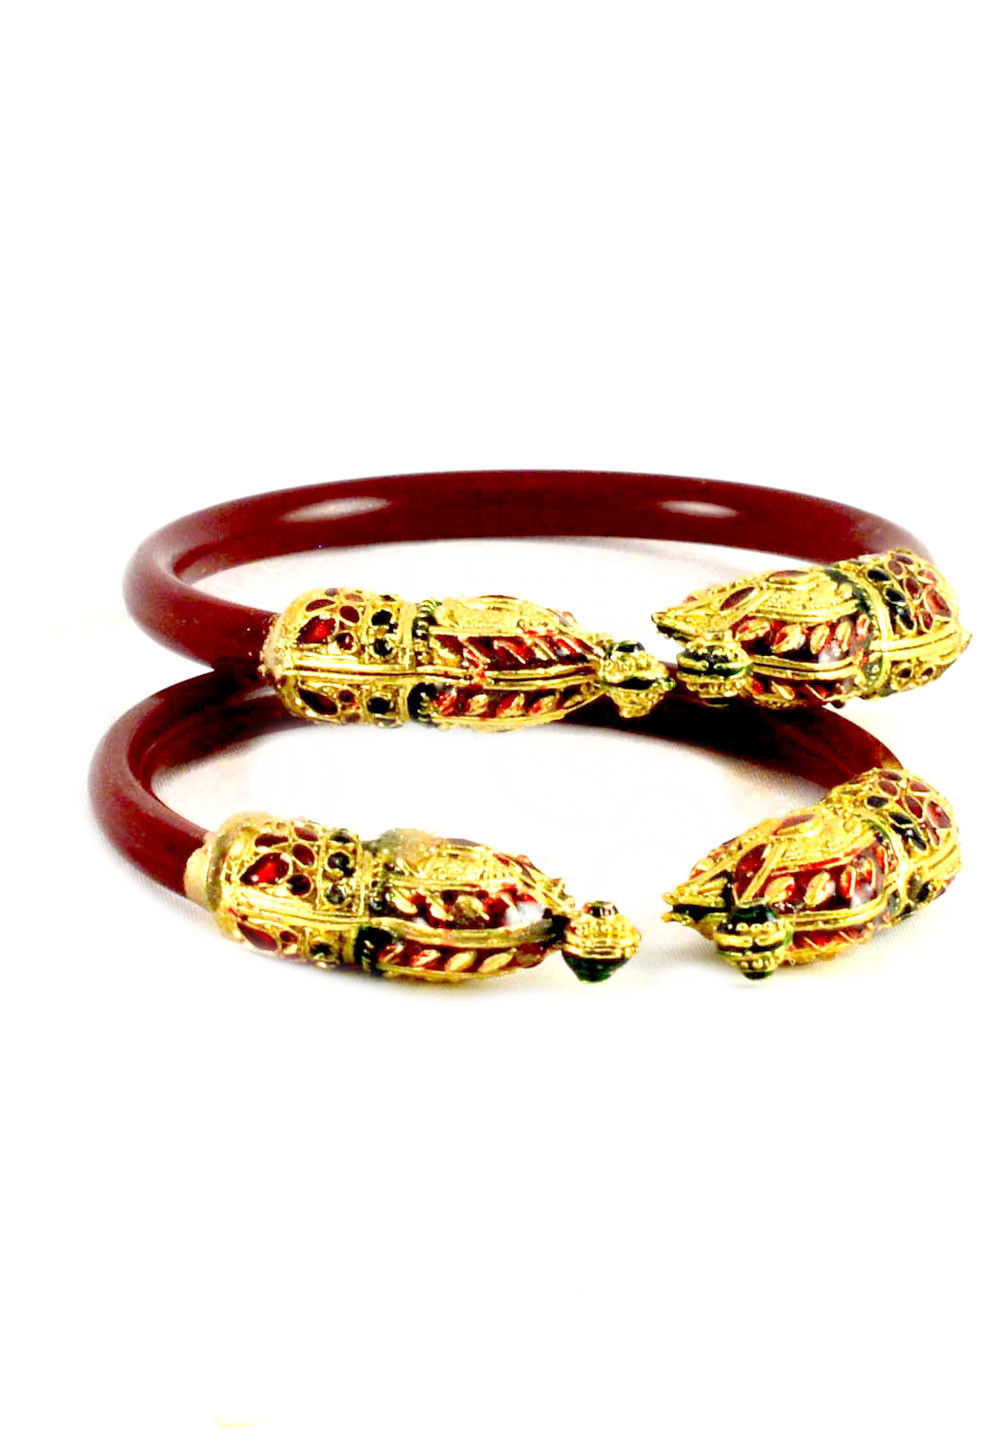 Meenakari Adjustable Bangle Pair in Maroon